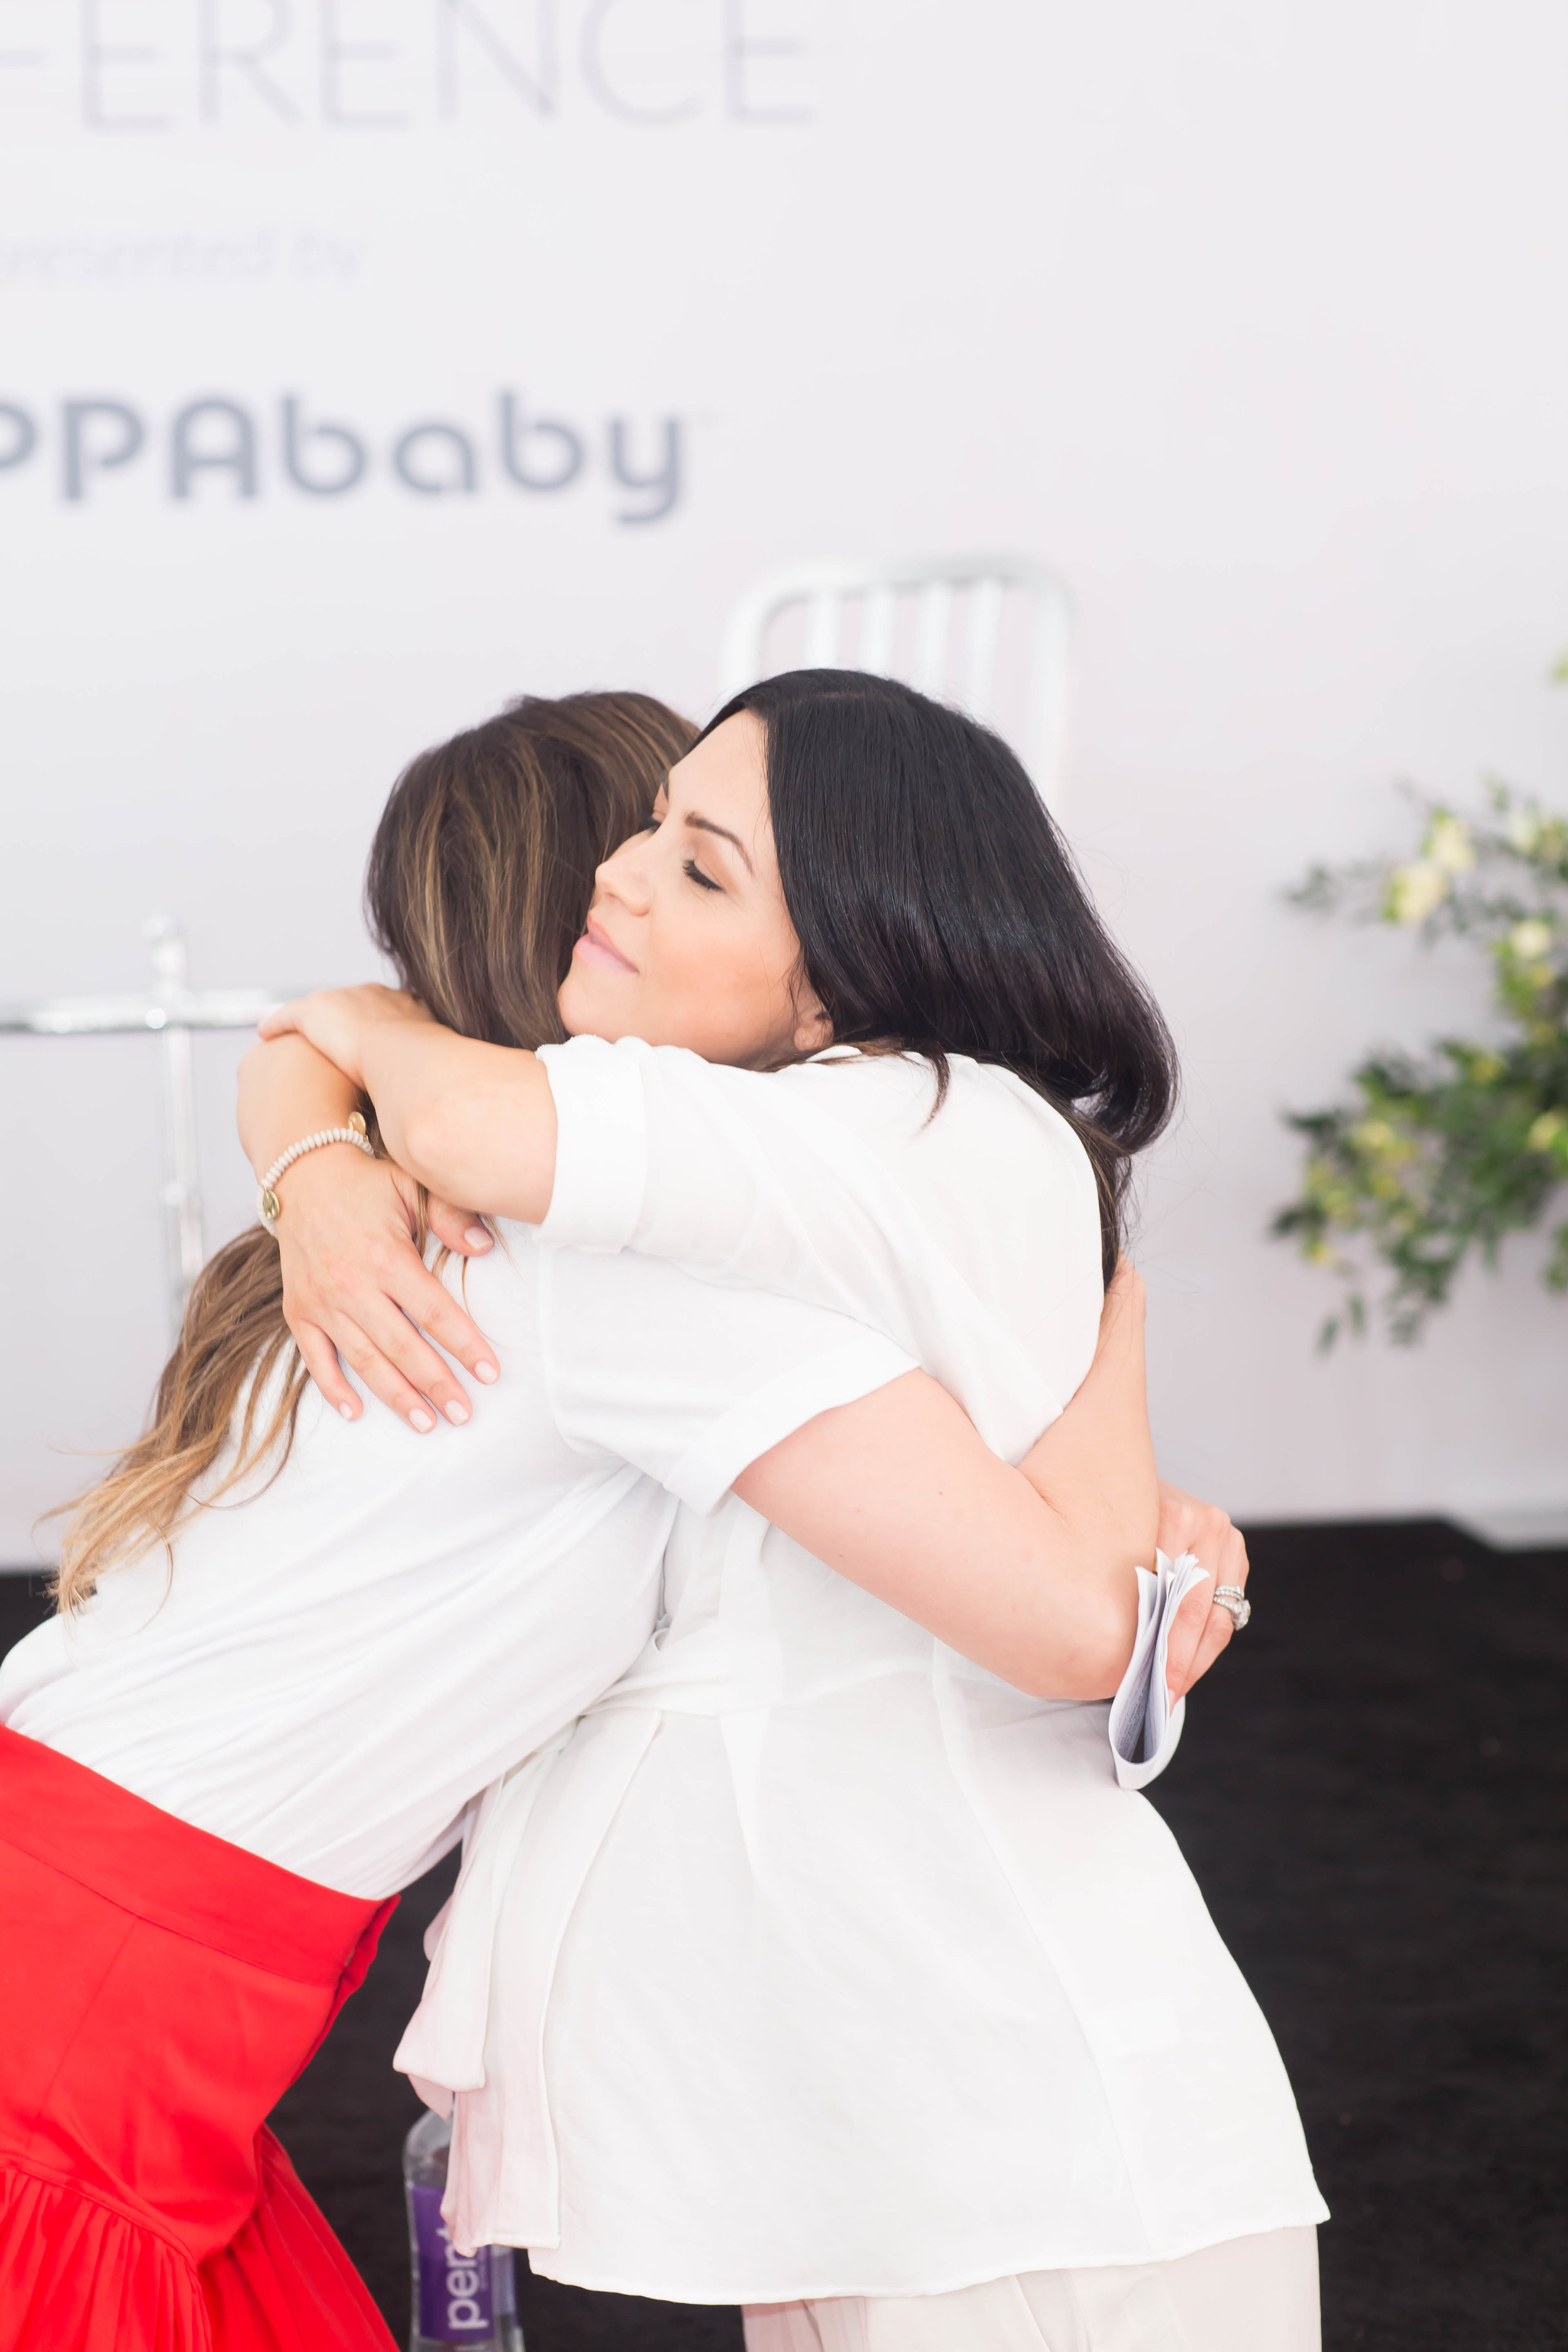 Ali Landry and El Abad hugging at Happy Mom Conference 2019